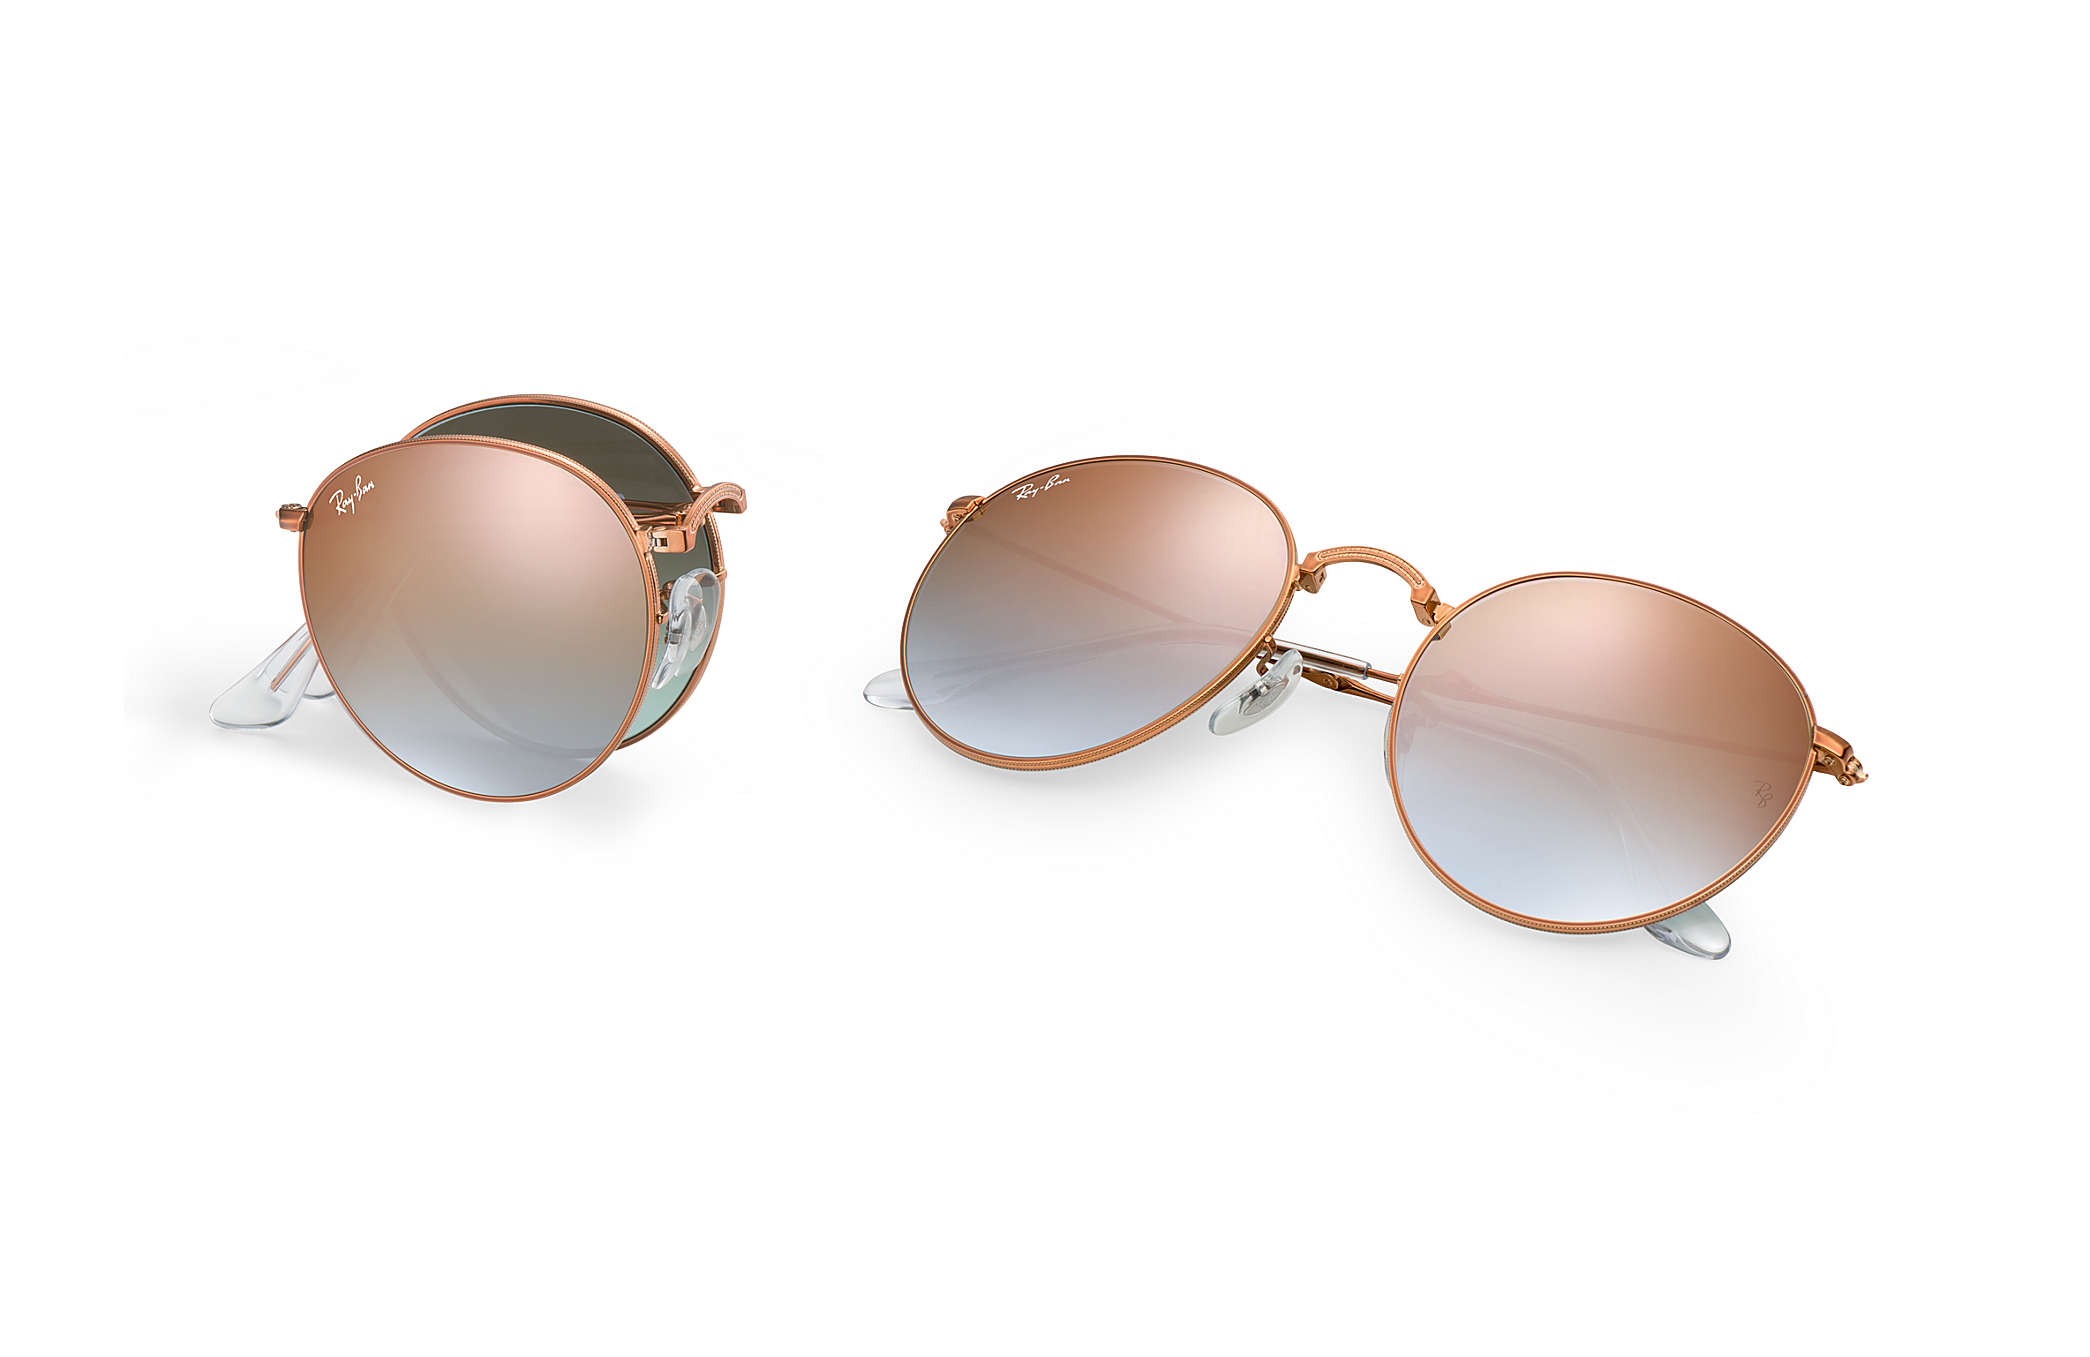 09ad025a8c Ray-Ban Round Metal Folding RB3532 Bronze-Copper - Metal - Copper ...